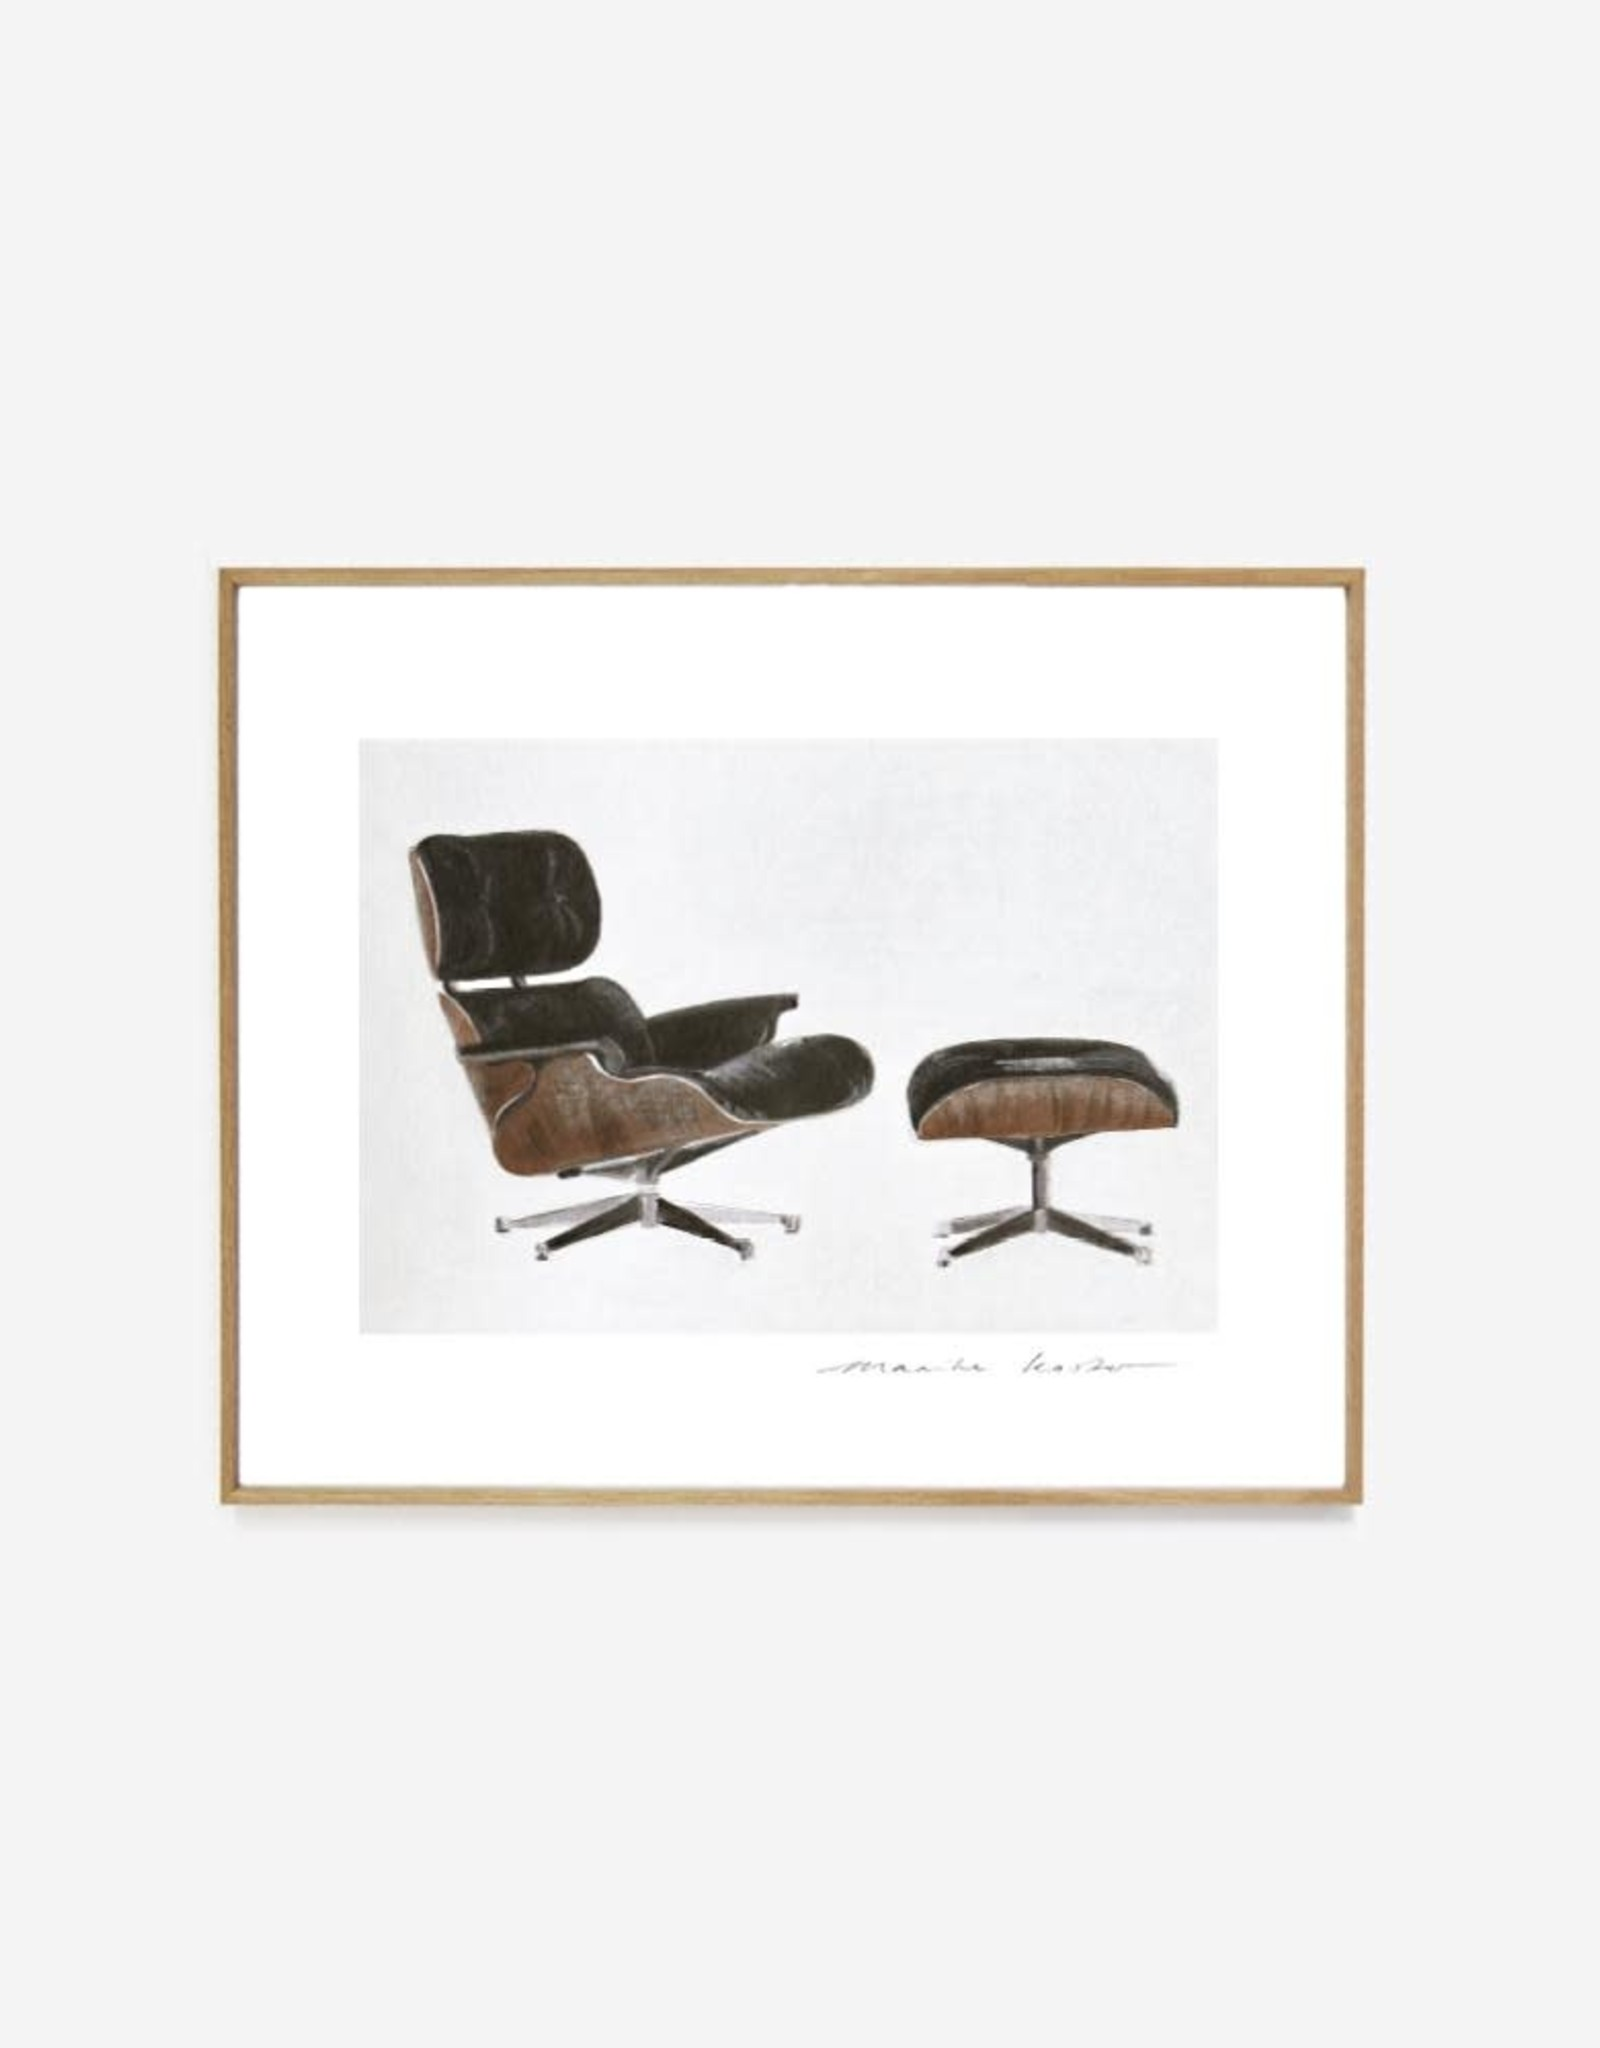 """My Deer Art Shop """"Eames Lounge"""" 30x40 Limited edition"""